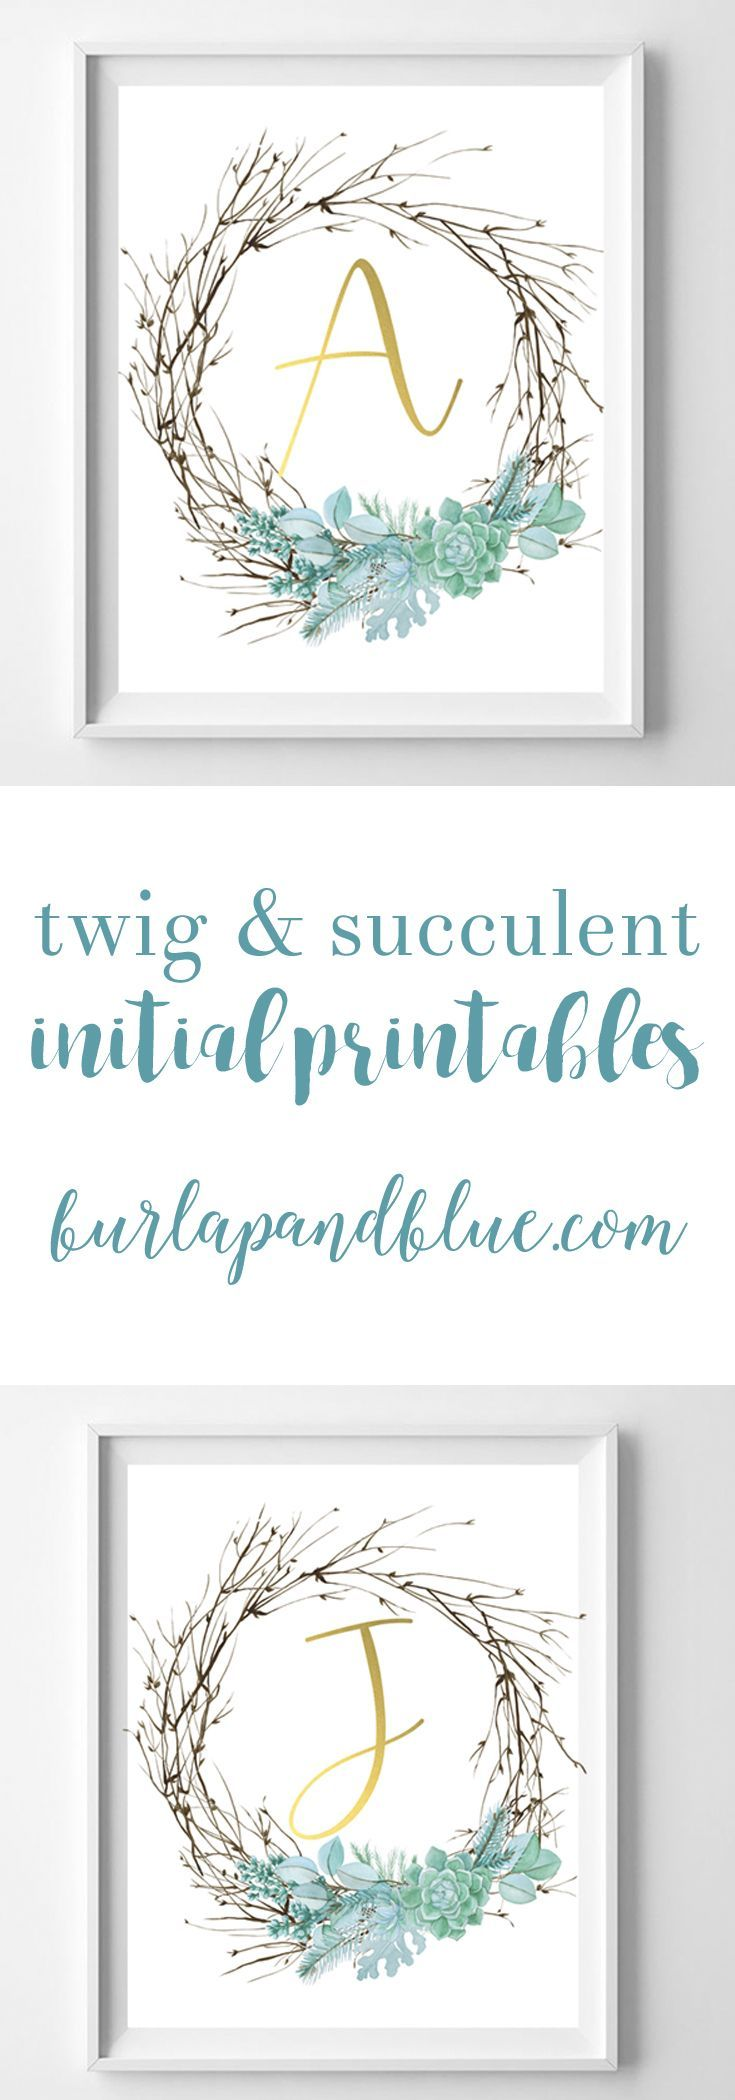 Twig and succulent initial printables! Free printable art for your home, gallery...